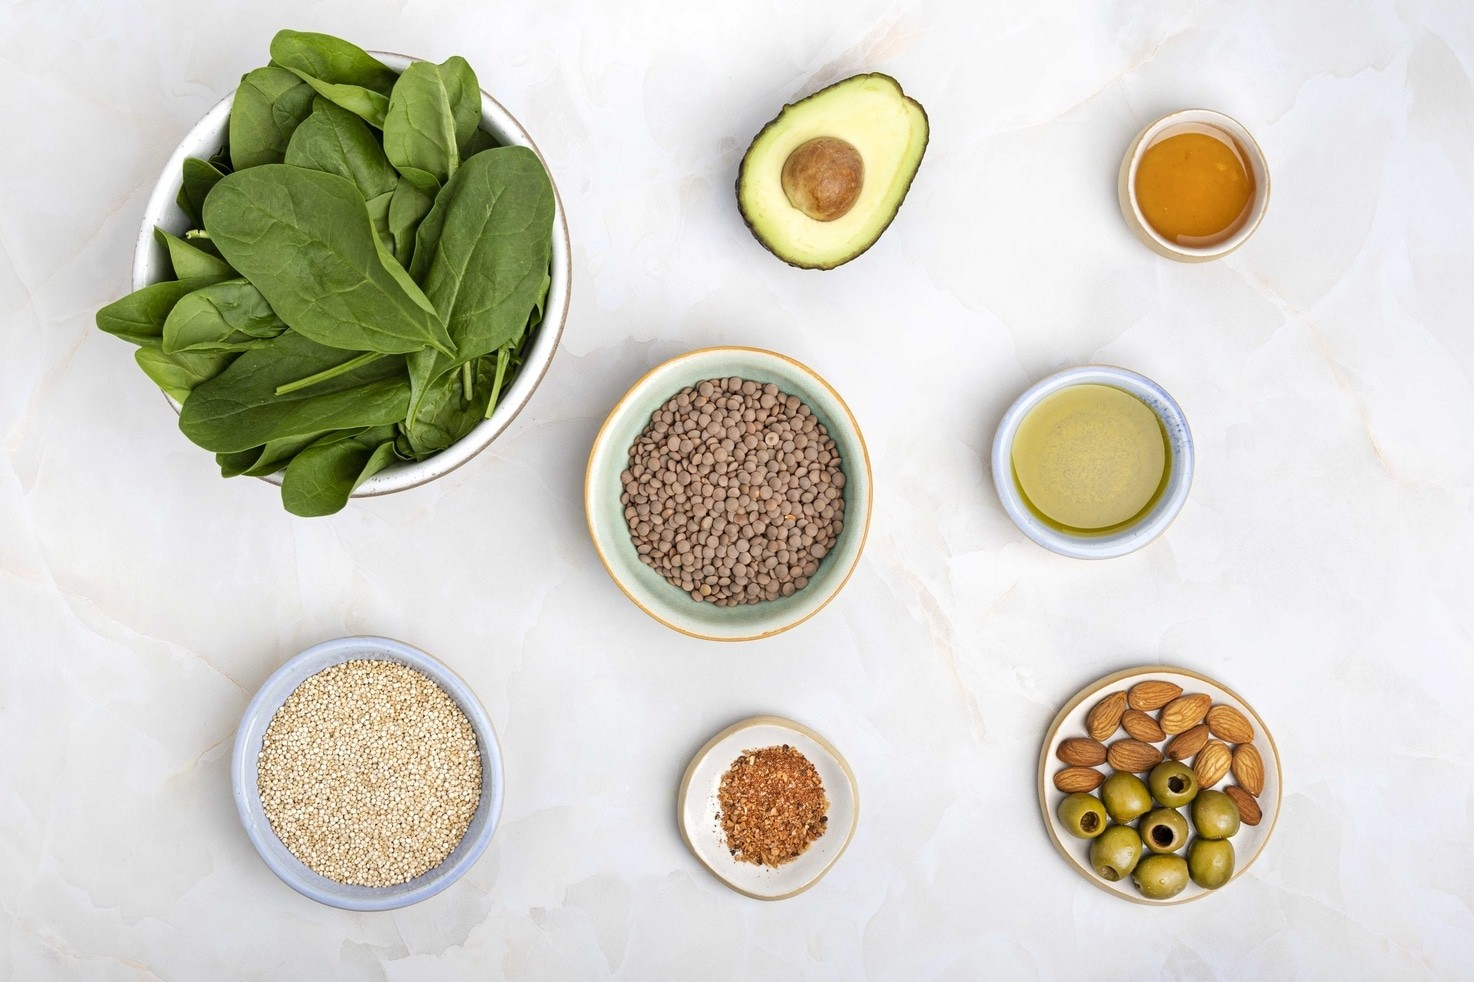 The salad ingredients such as quinoa, red lentils, avocado, olive oil, almonds, olives, spinach etc.   Hurry The Food Up